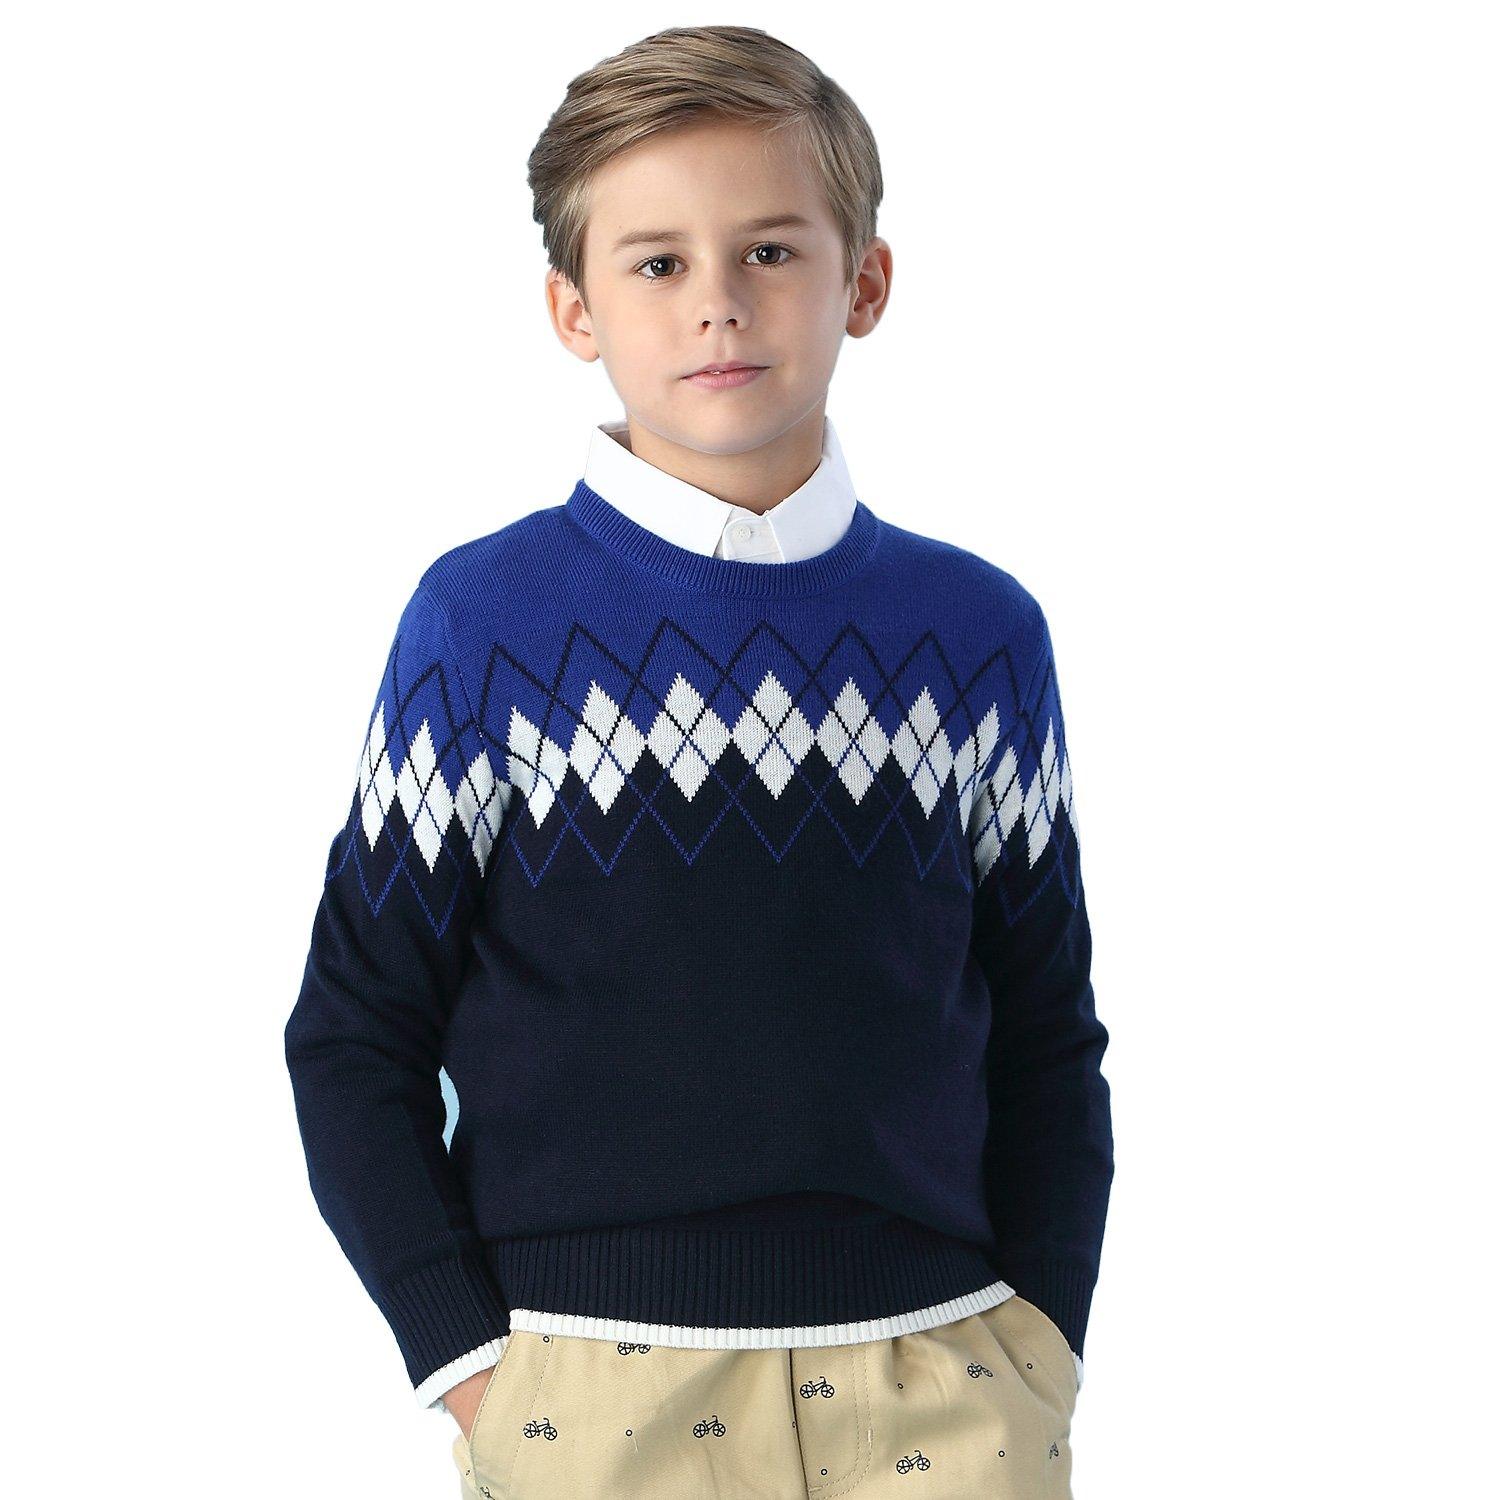 Leo&Lily Big Boys' Kids' Wool Blends Jacquard Casual Pullover Sweater LLB1252-8-Navy-$P